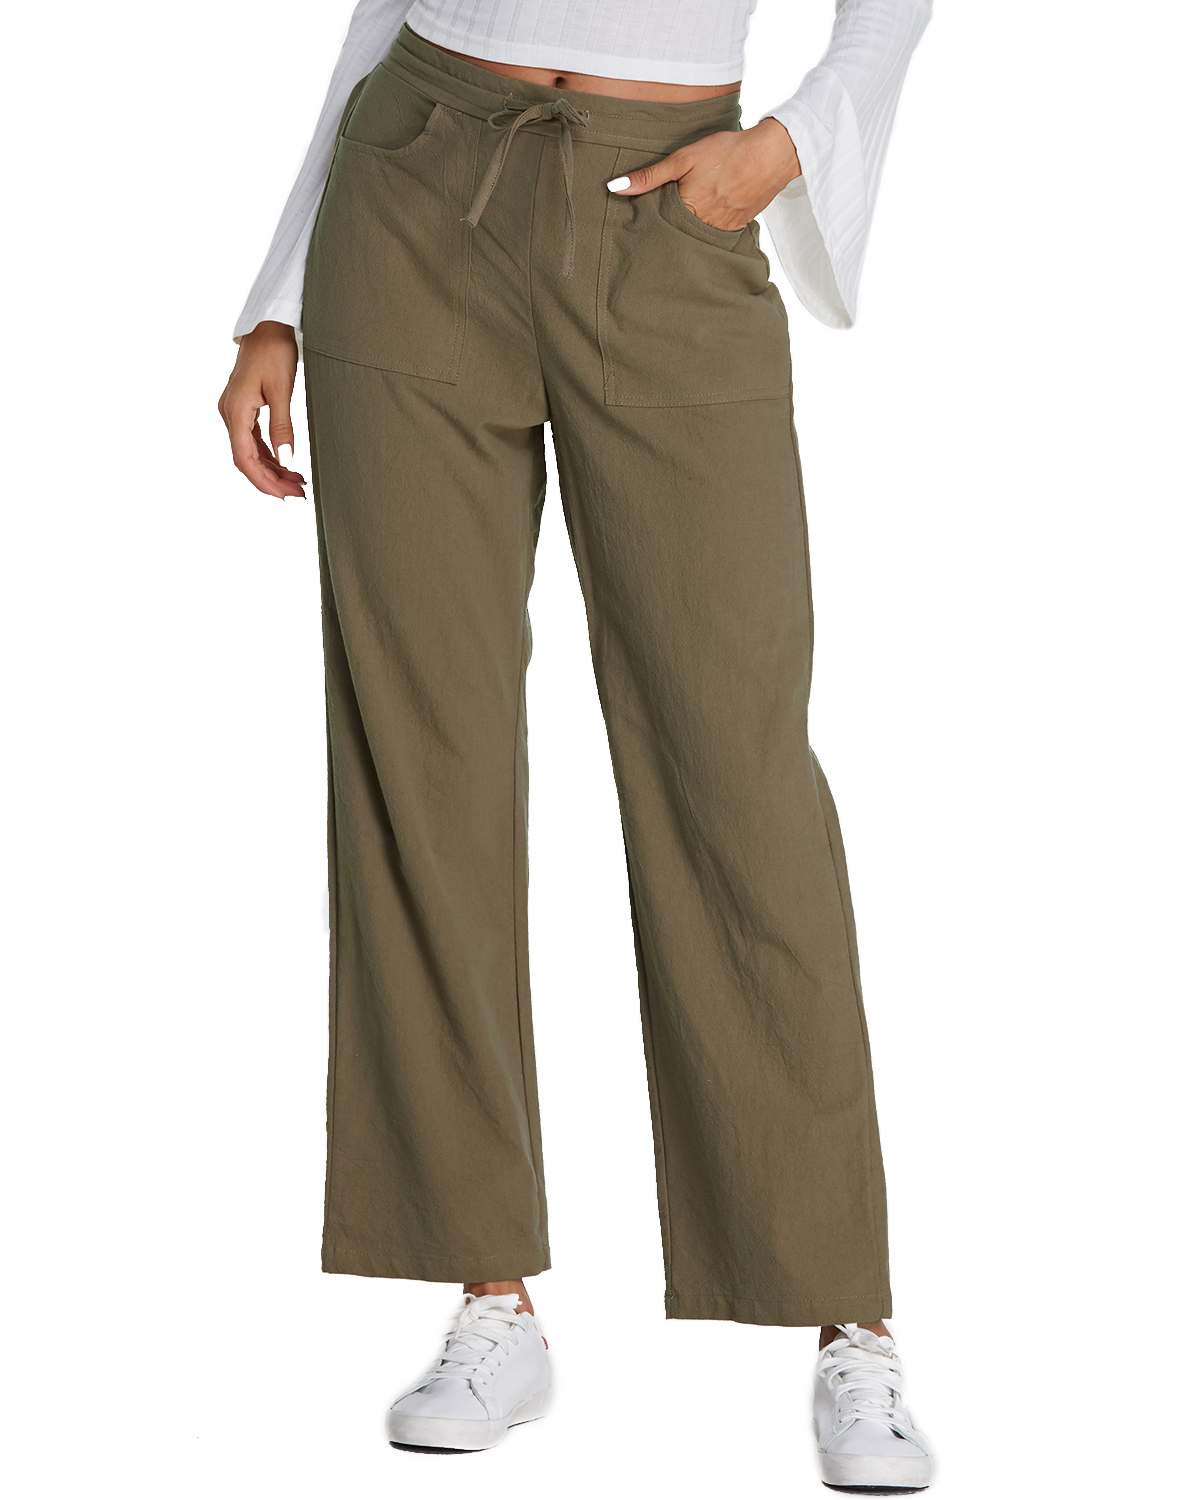 ZANZEA 2019 Casual Wide Leg Pants Women Elastic Mid Waist Trouser Plus Size Cotton Loose Pant Trouser Full Length Pantalon Mujer